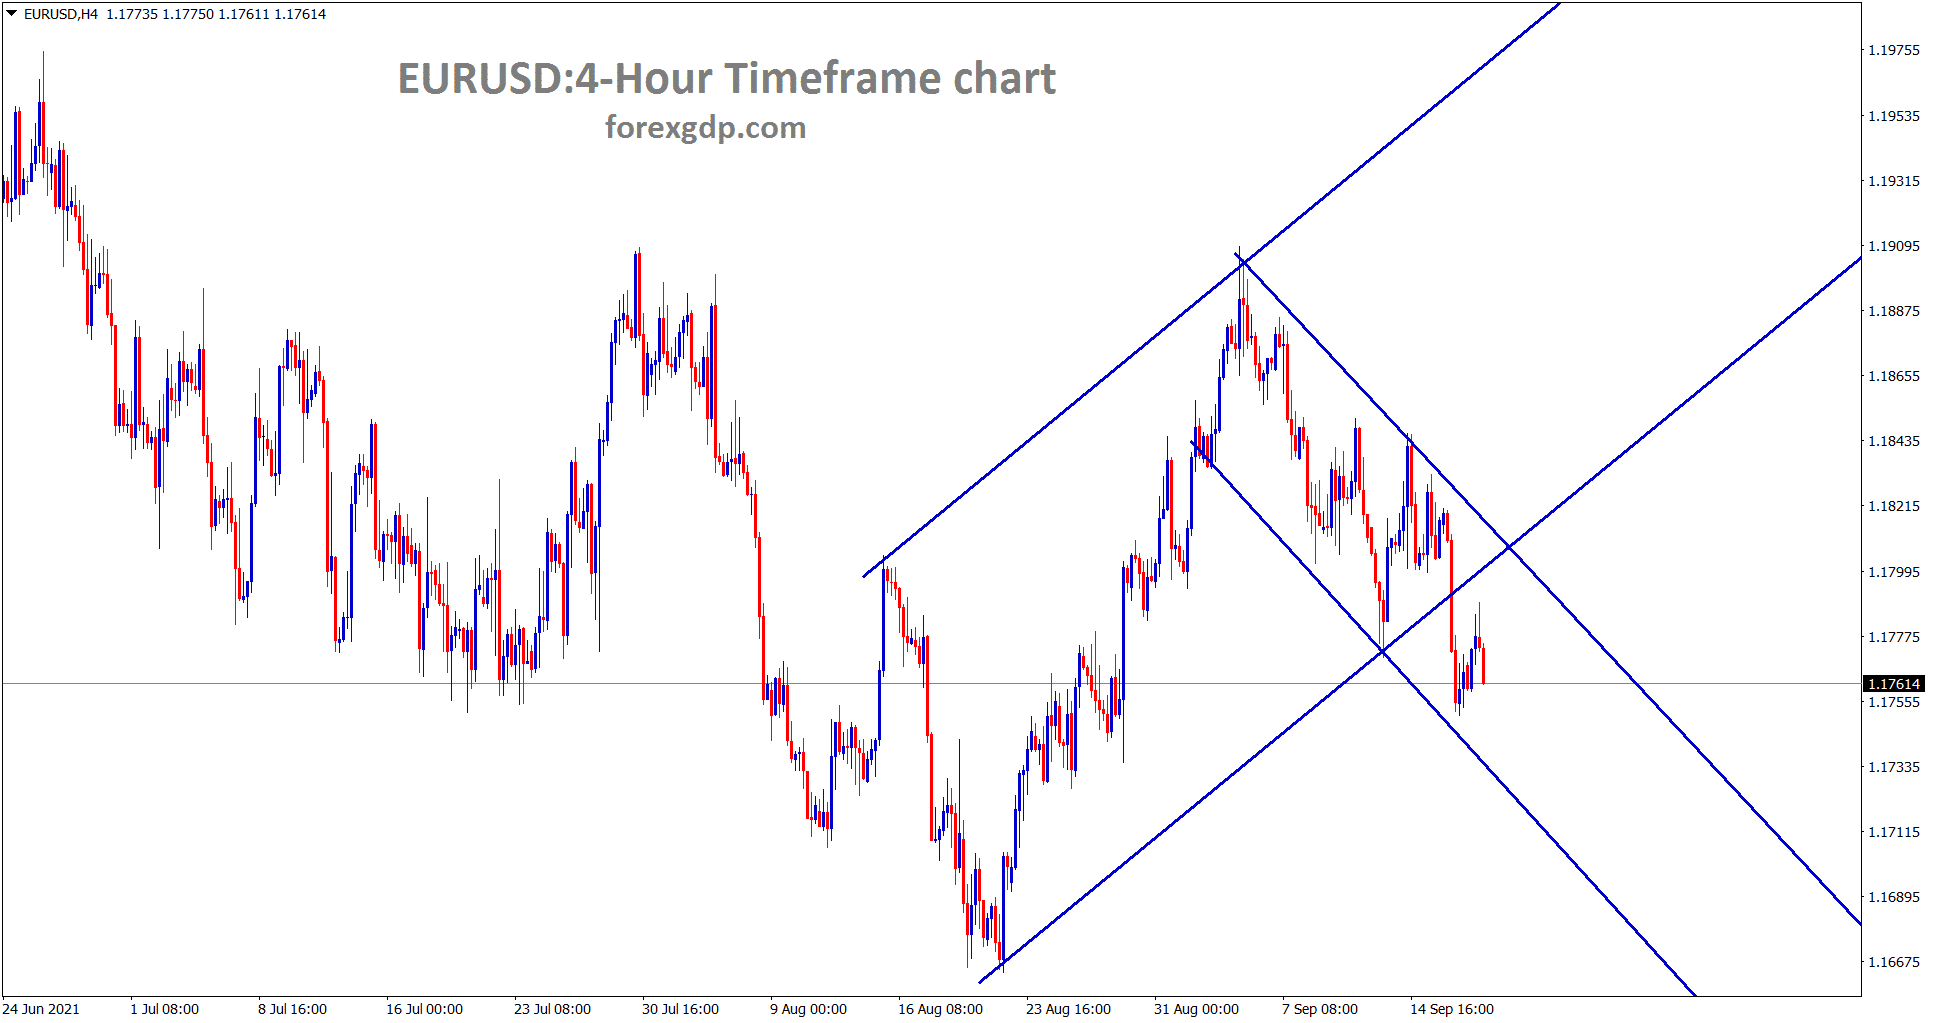 EURUSD is still moving between the channel ranges